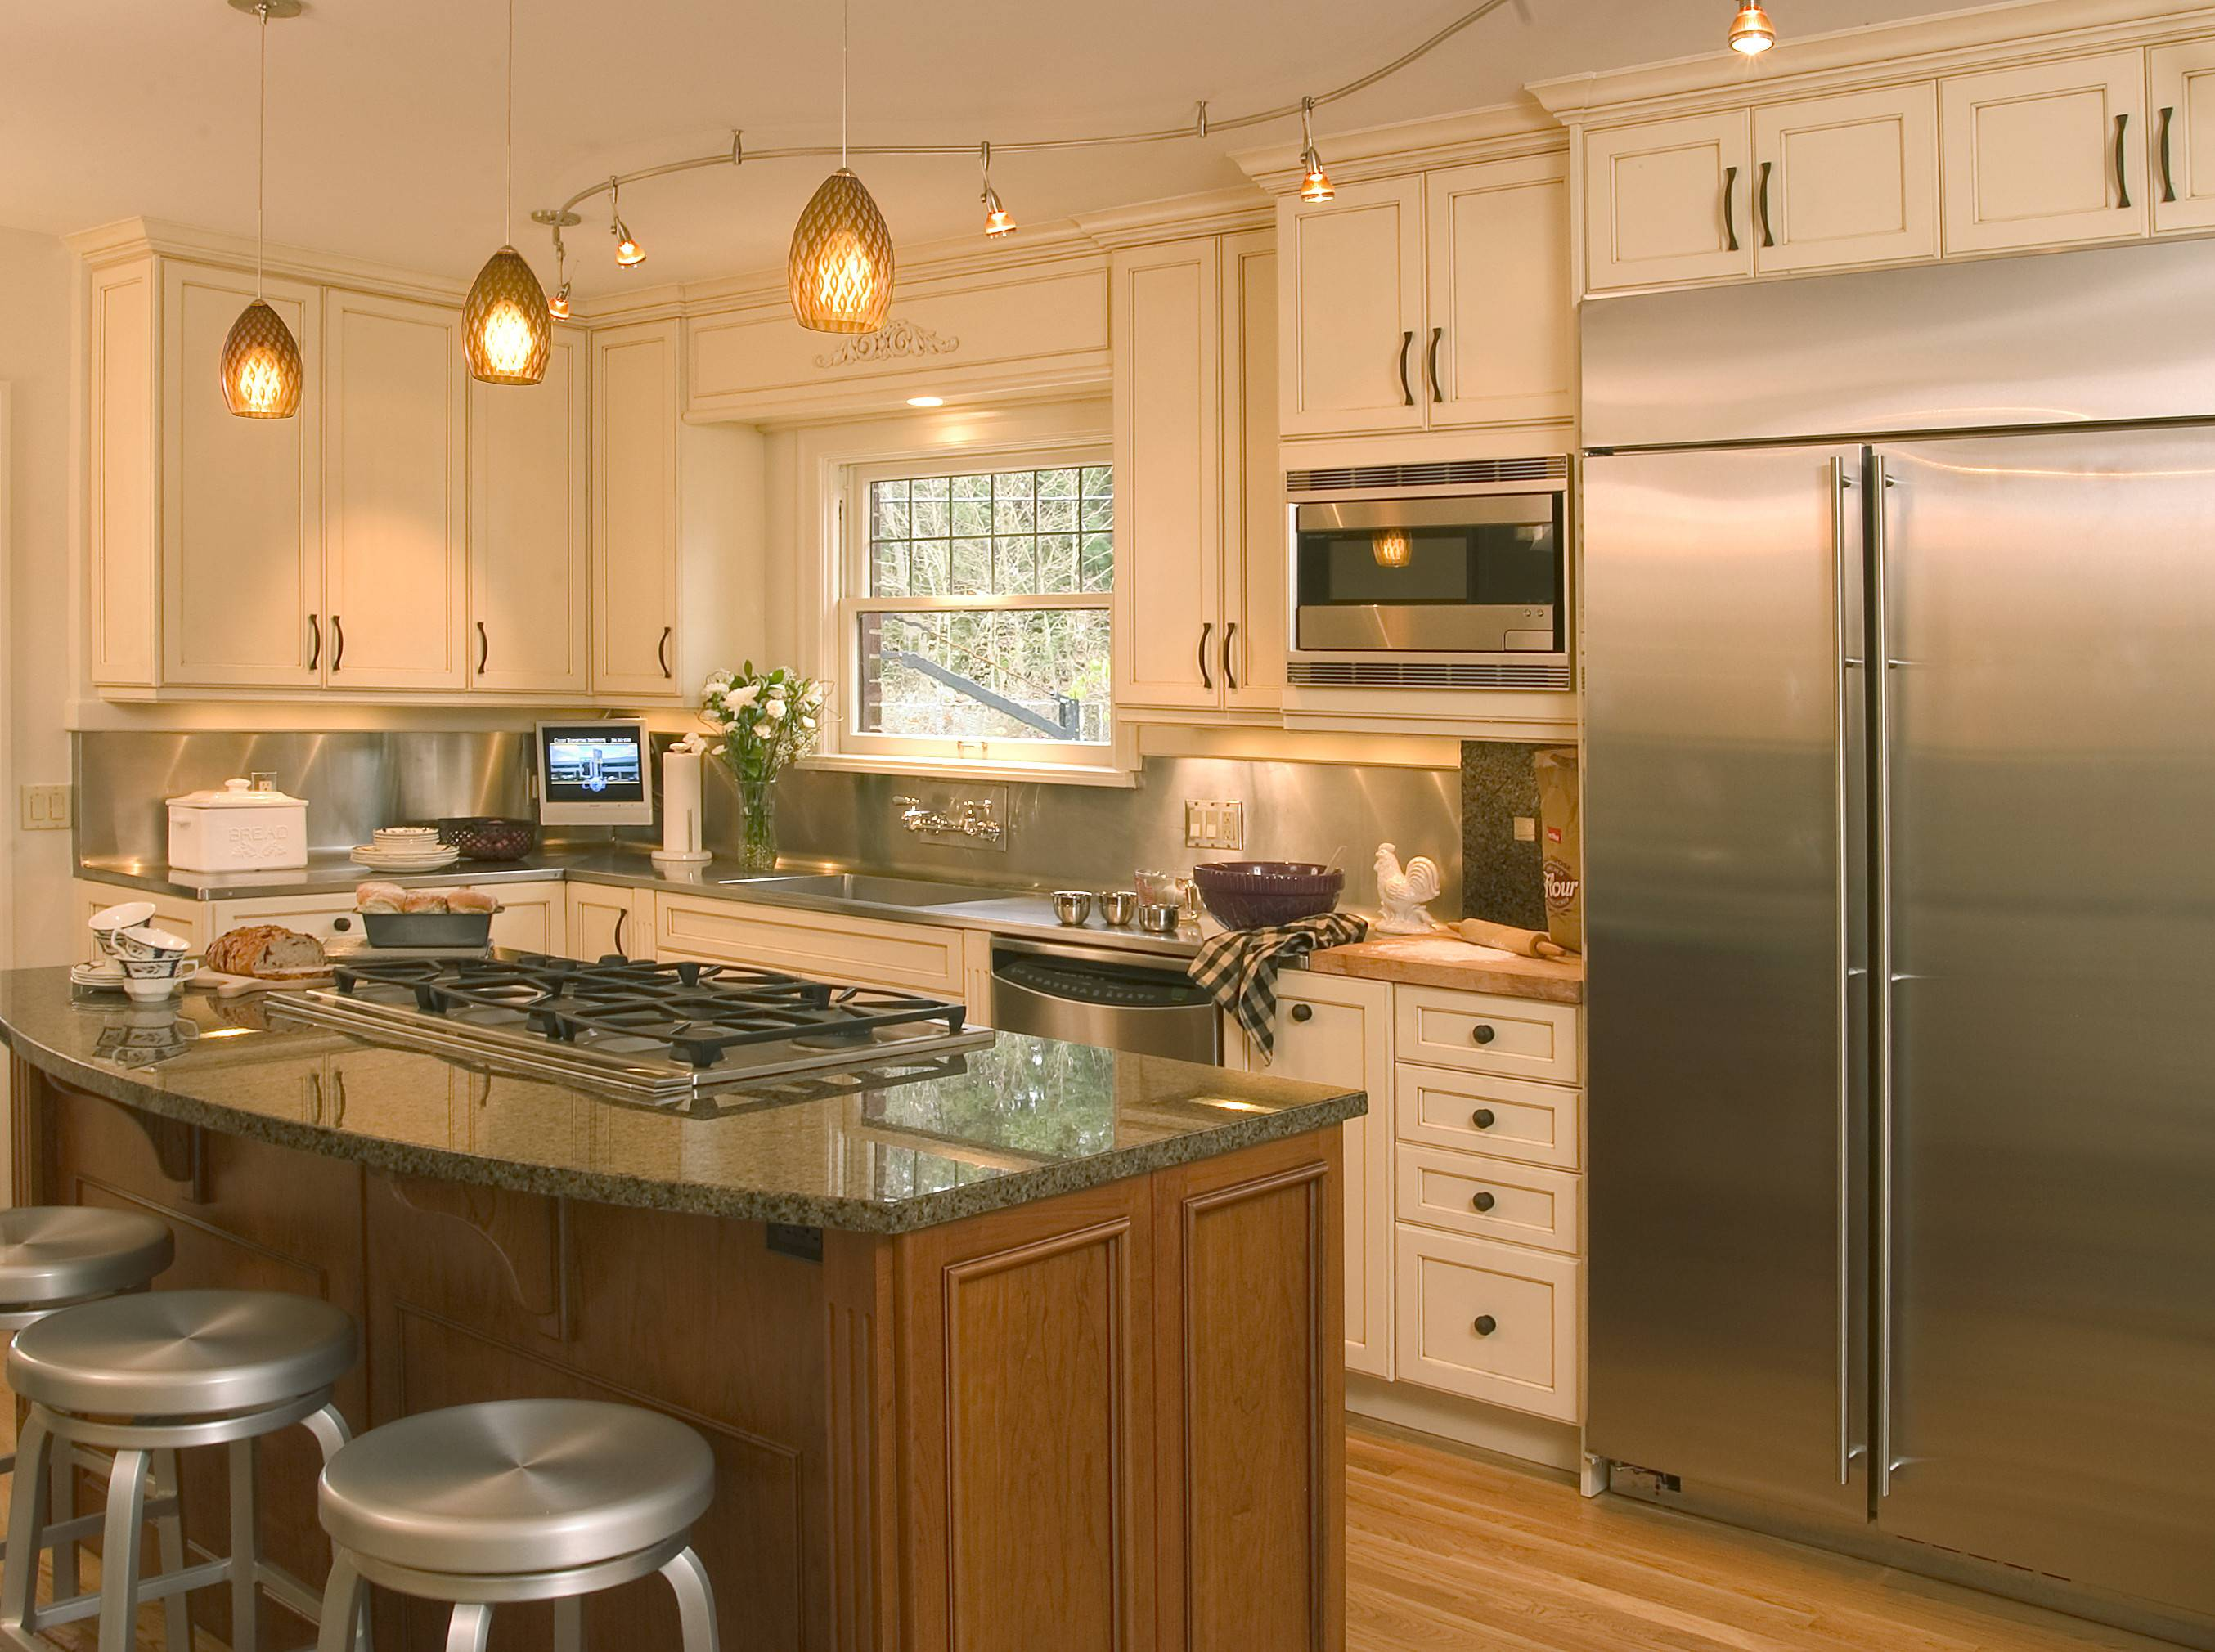 Crystal Renovations Llc General Contracting Kitchen